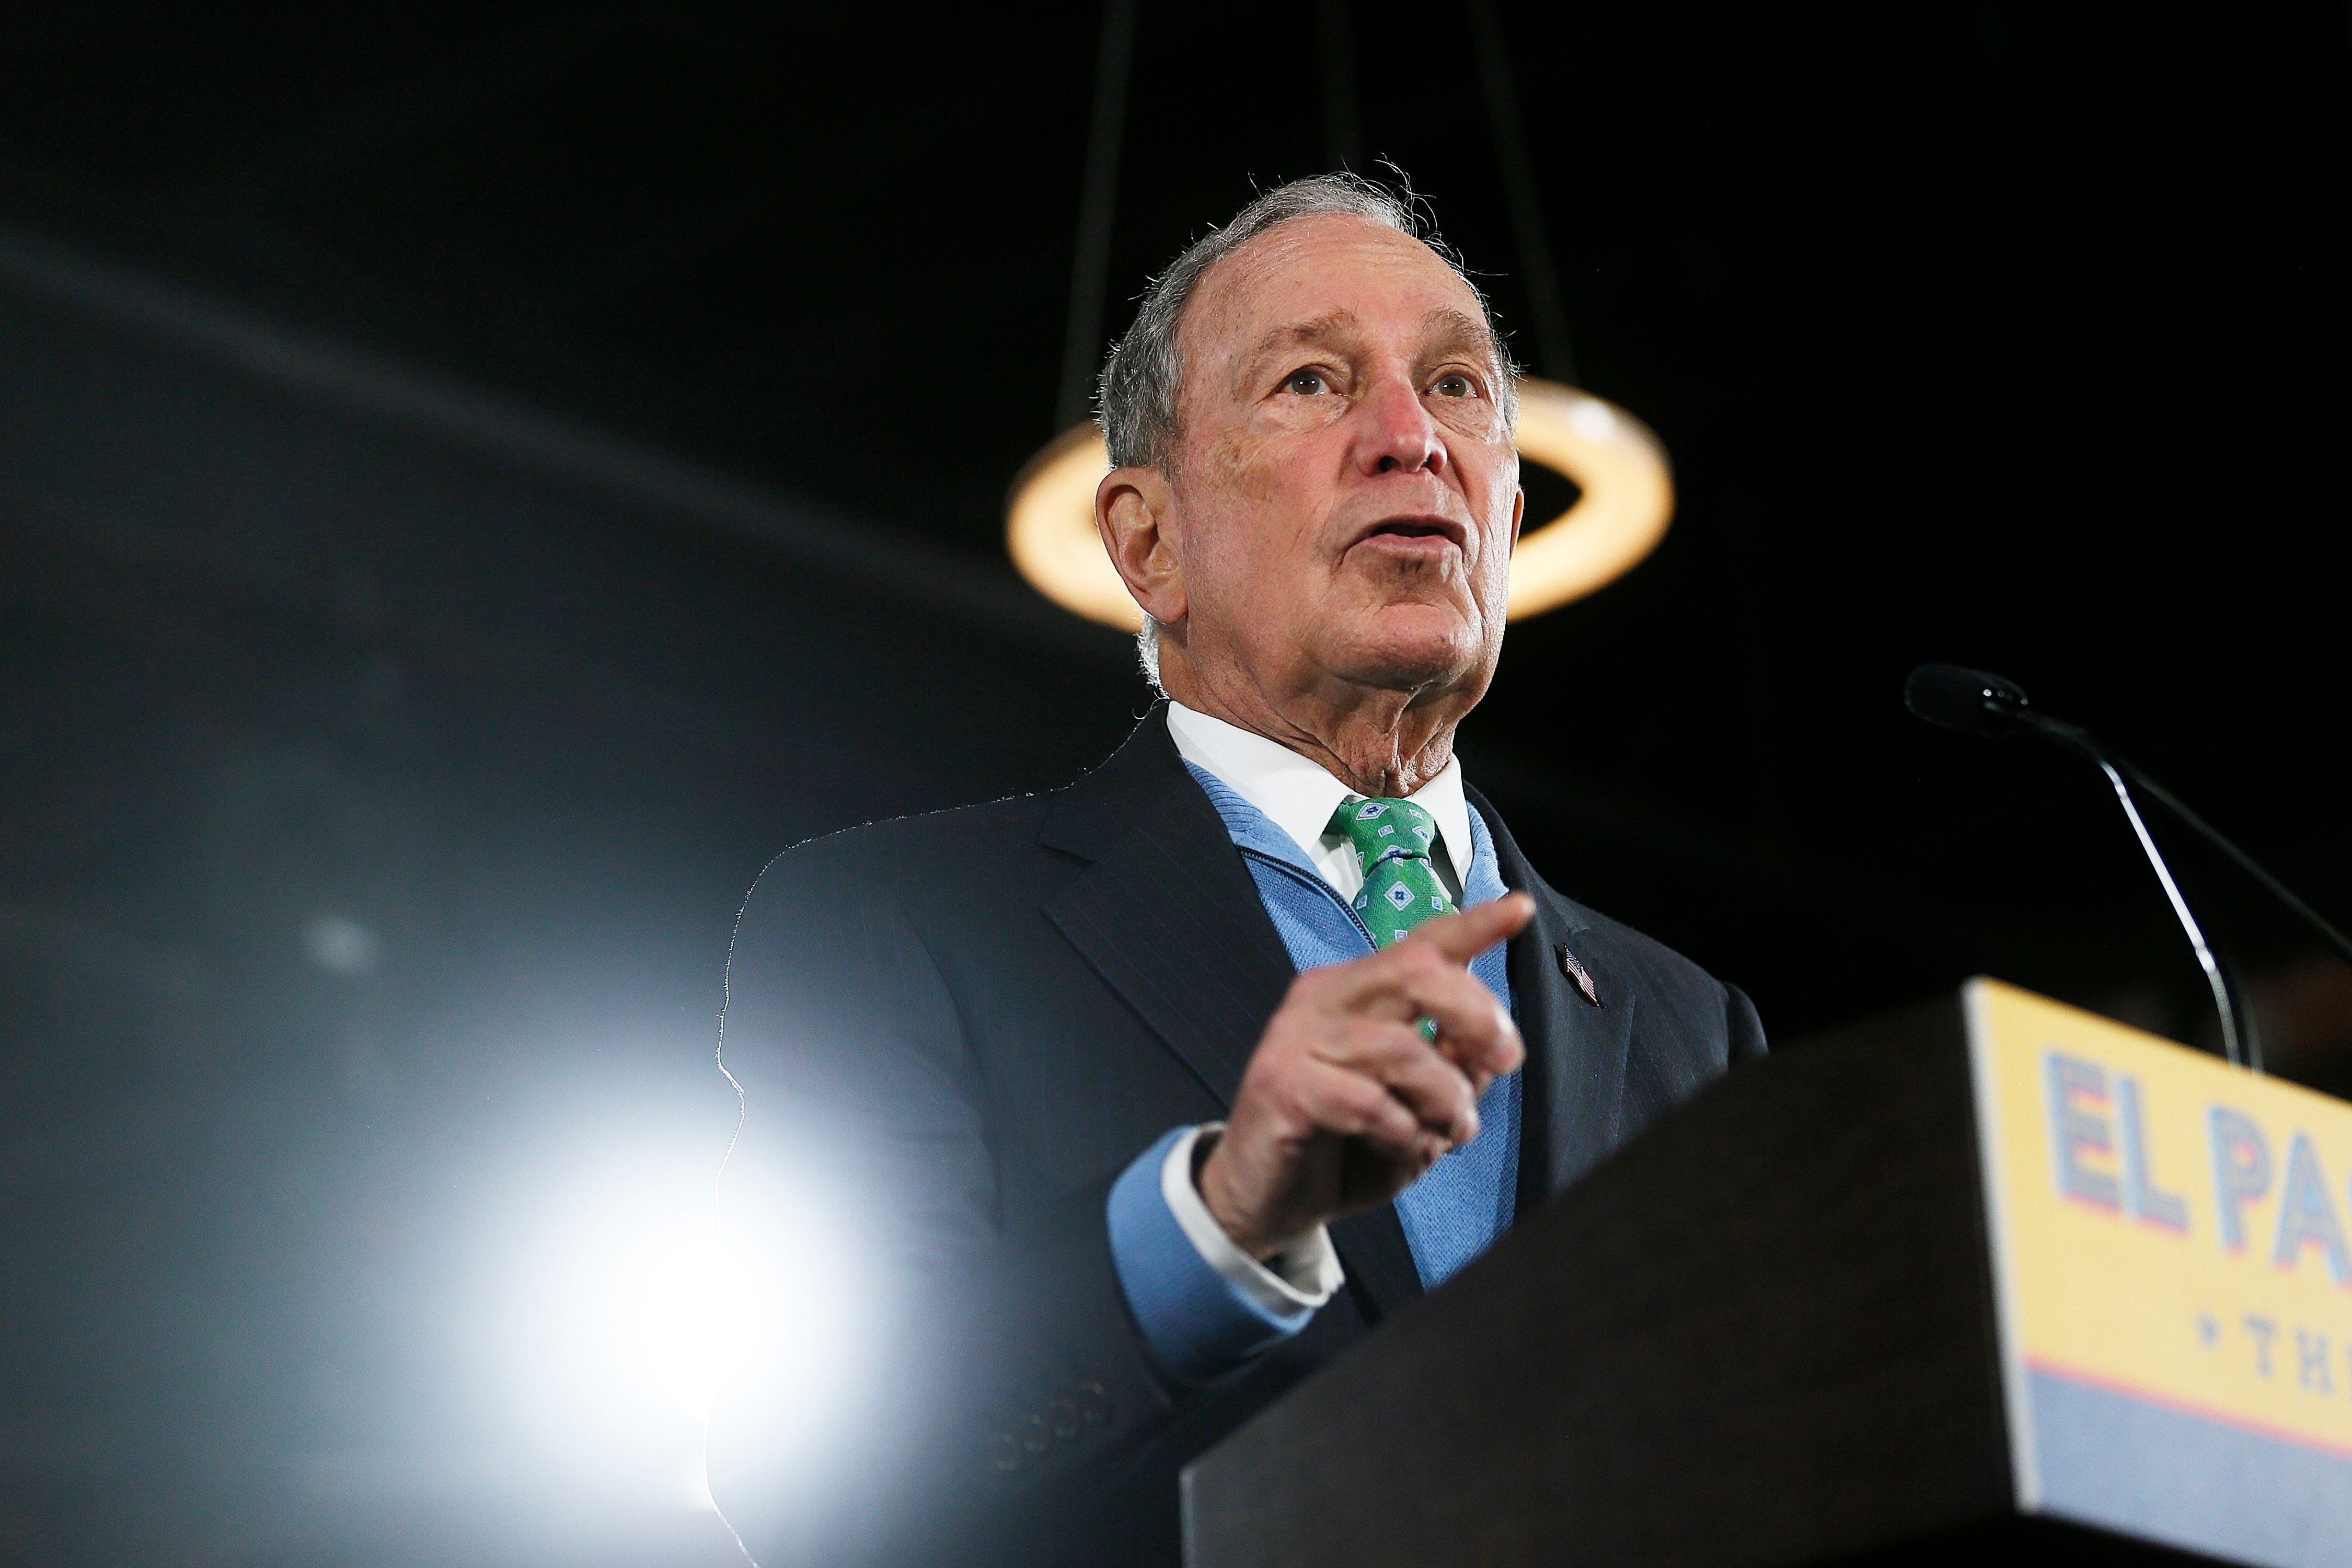 US billionaire and philanthropist Mike Bloomberg during his short-lived presidential primary campaign. Reuters